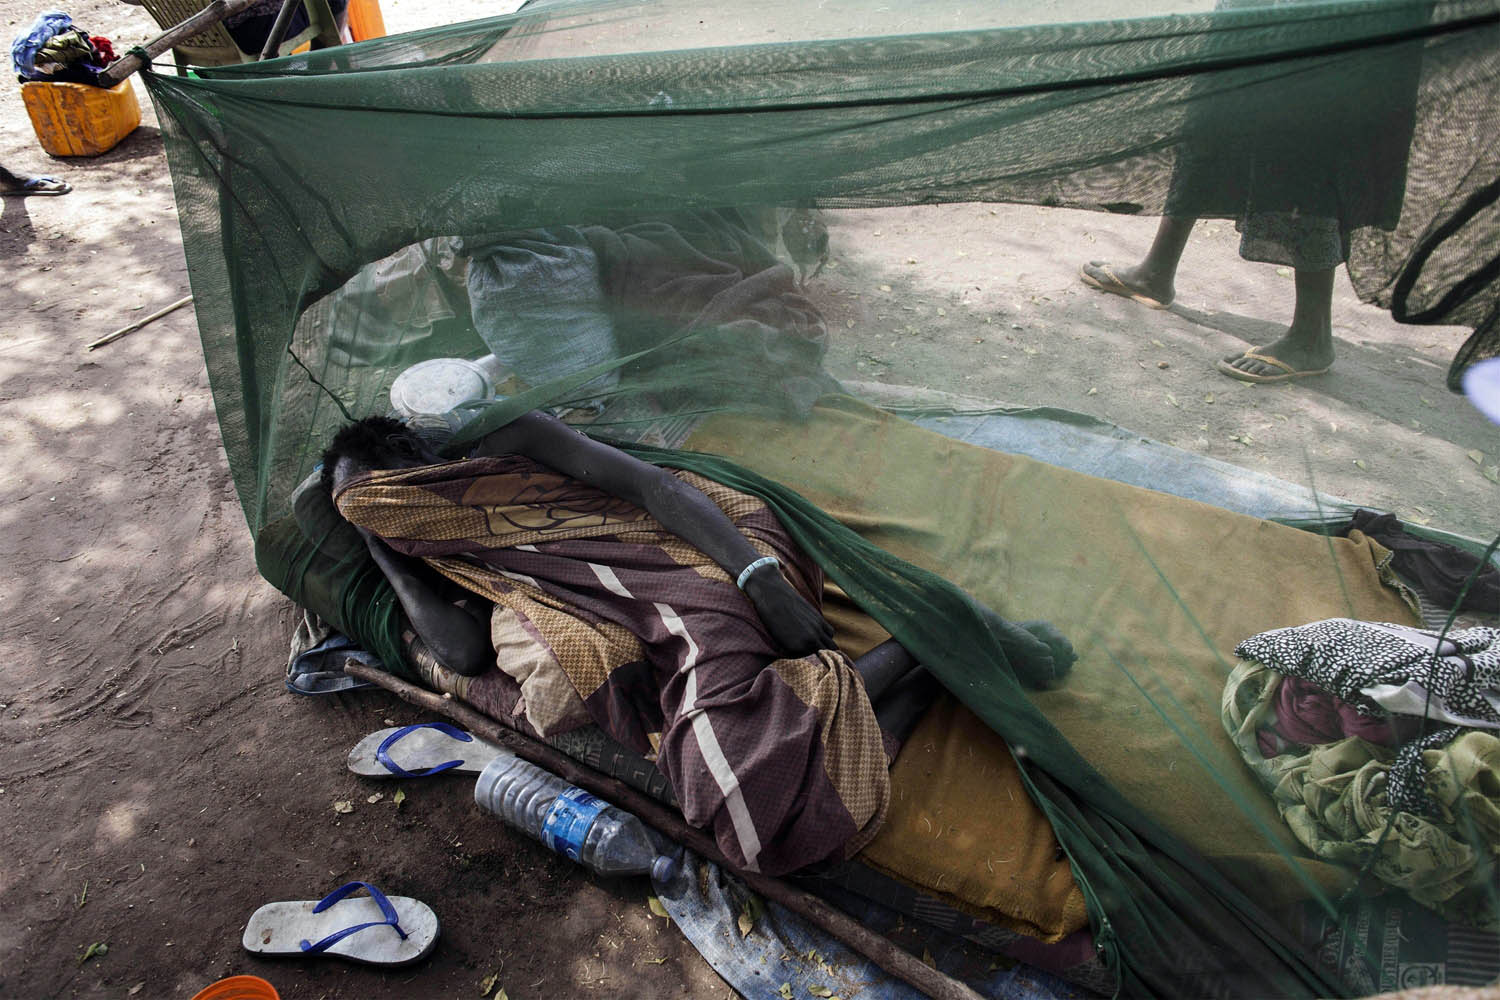 Feb. 5, 2014. A South Sudanese woman lies under a mosquito net in a temporary camp for internally displaced persons in Mingkaman, South Sudan,